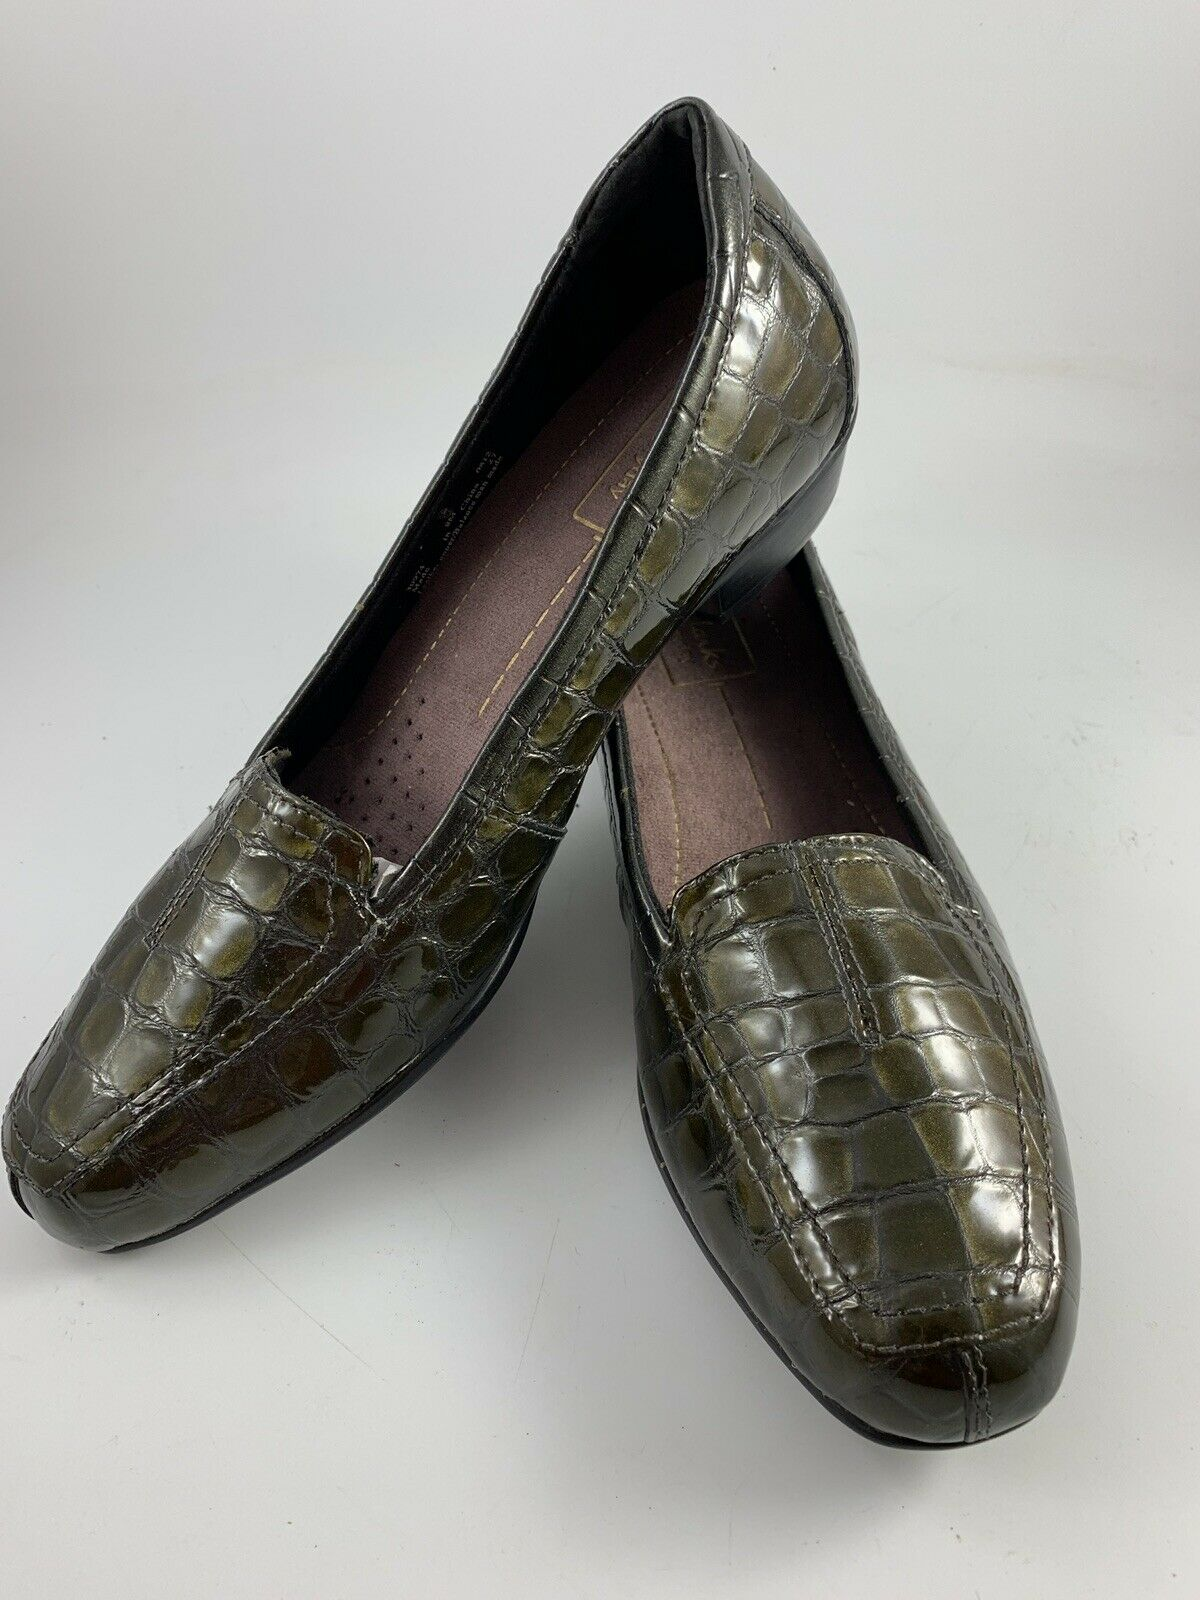 588dc575922 Clarks everyday loafer womens bronze gator or animal print leather jpg  1200x1600 Gator loafers